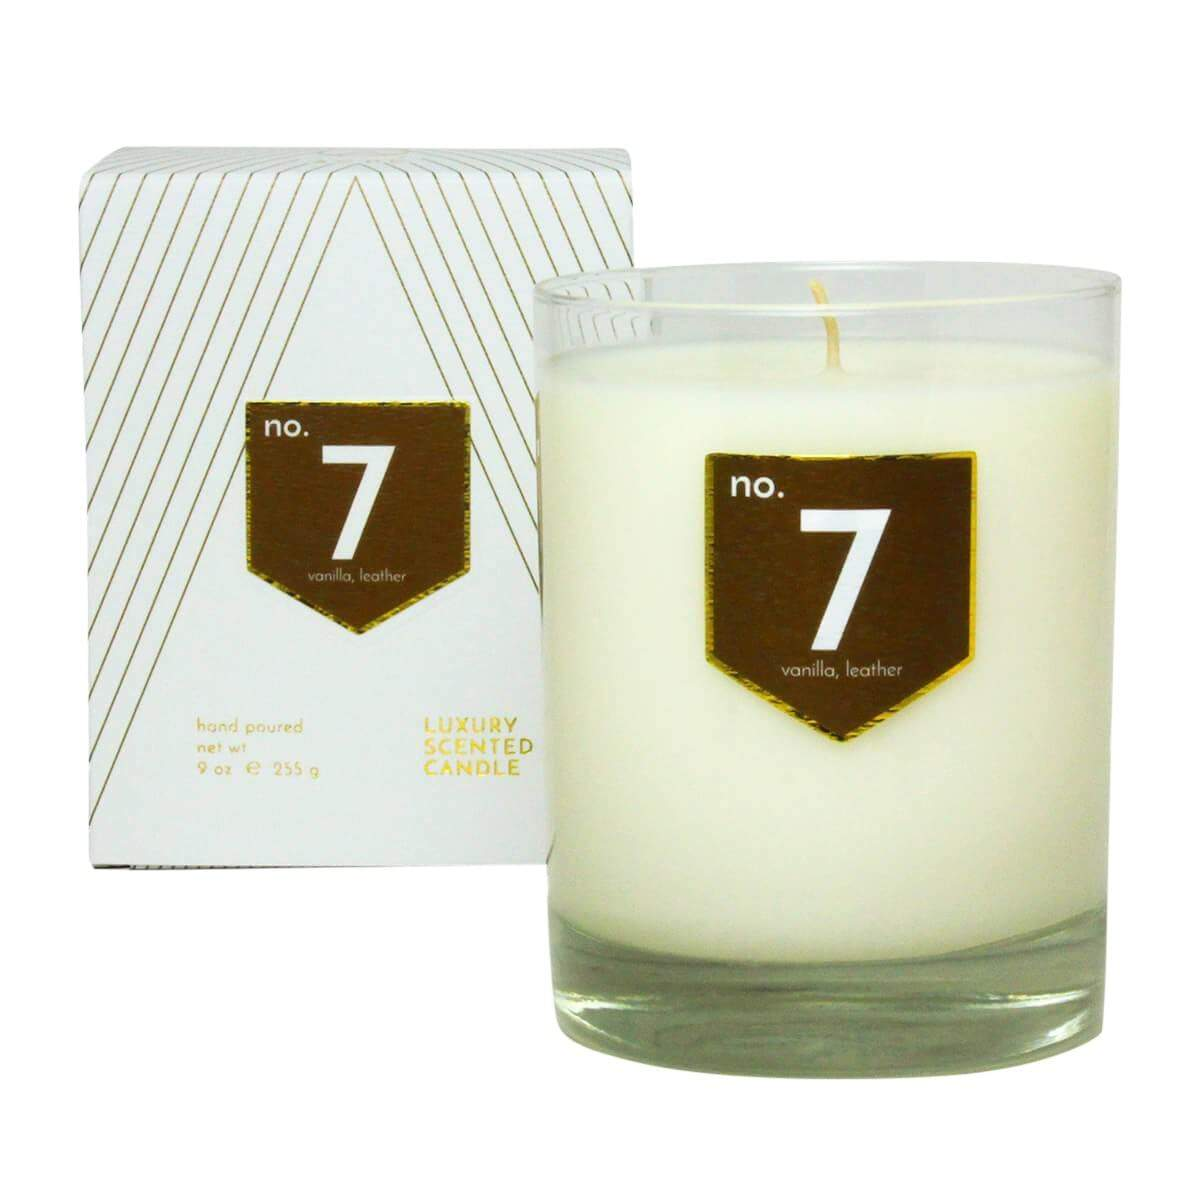 ACDC Candle Co Candles & Diffusers No. 7 Vanilla Leather Scented Soy Candle